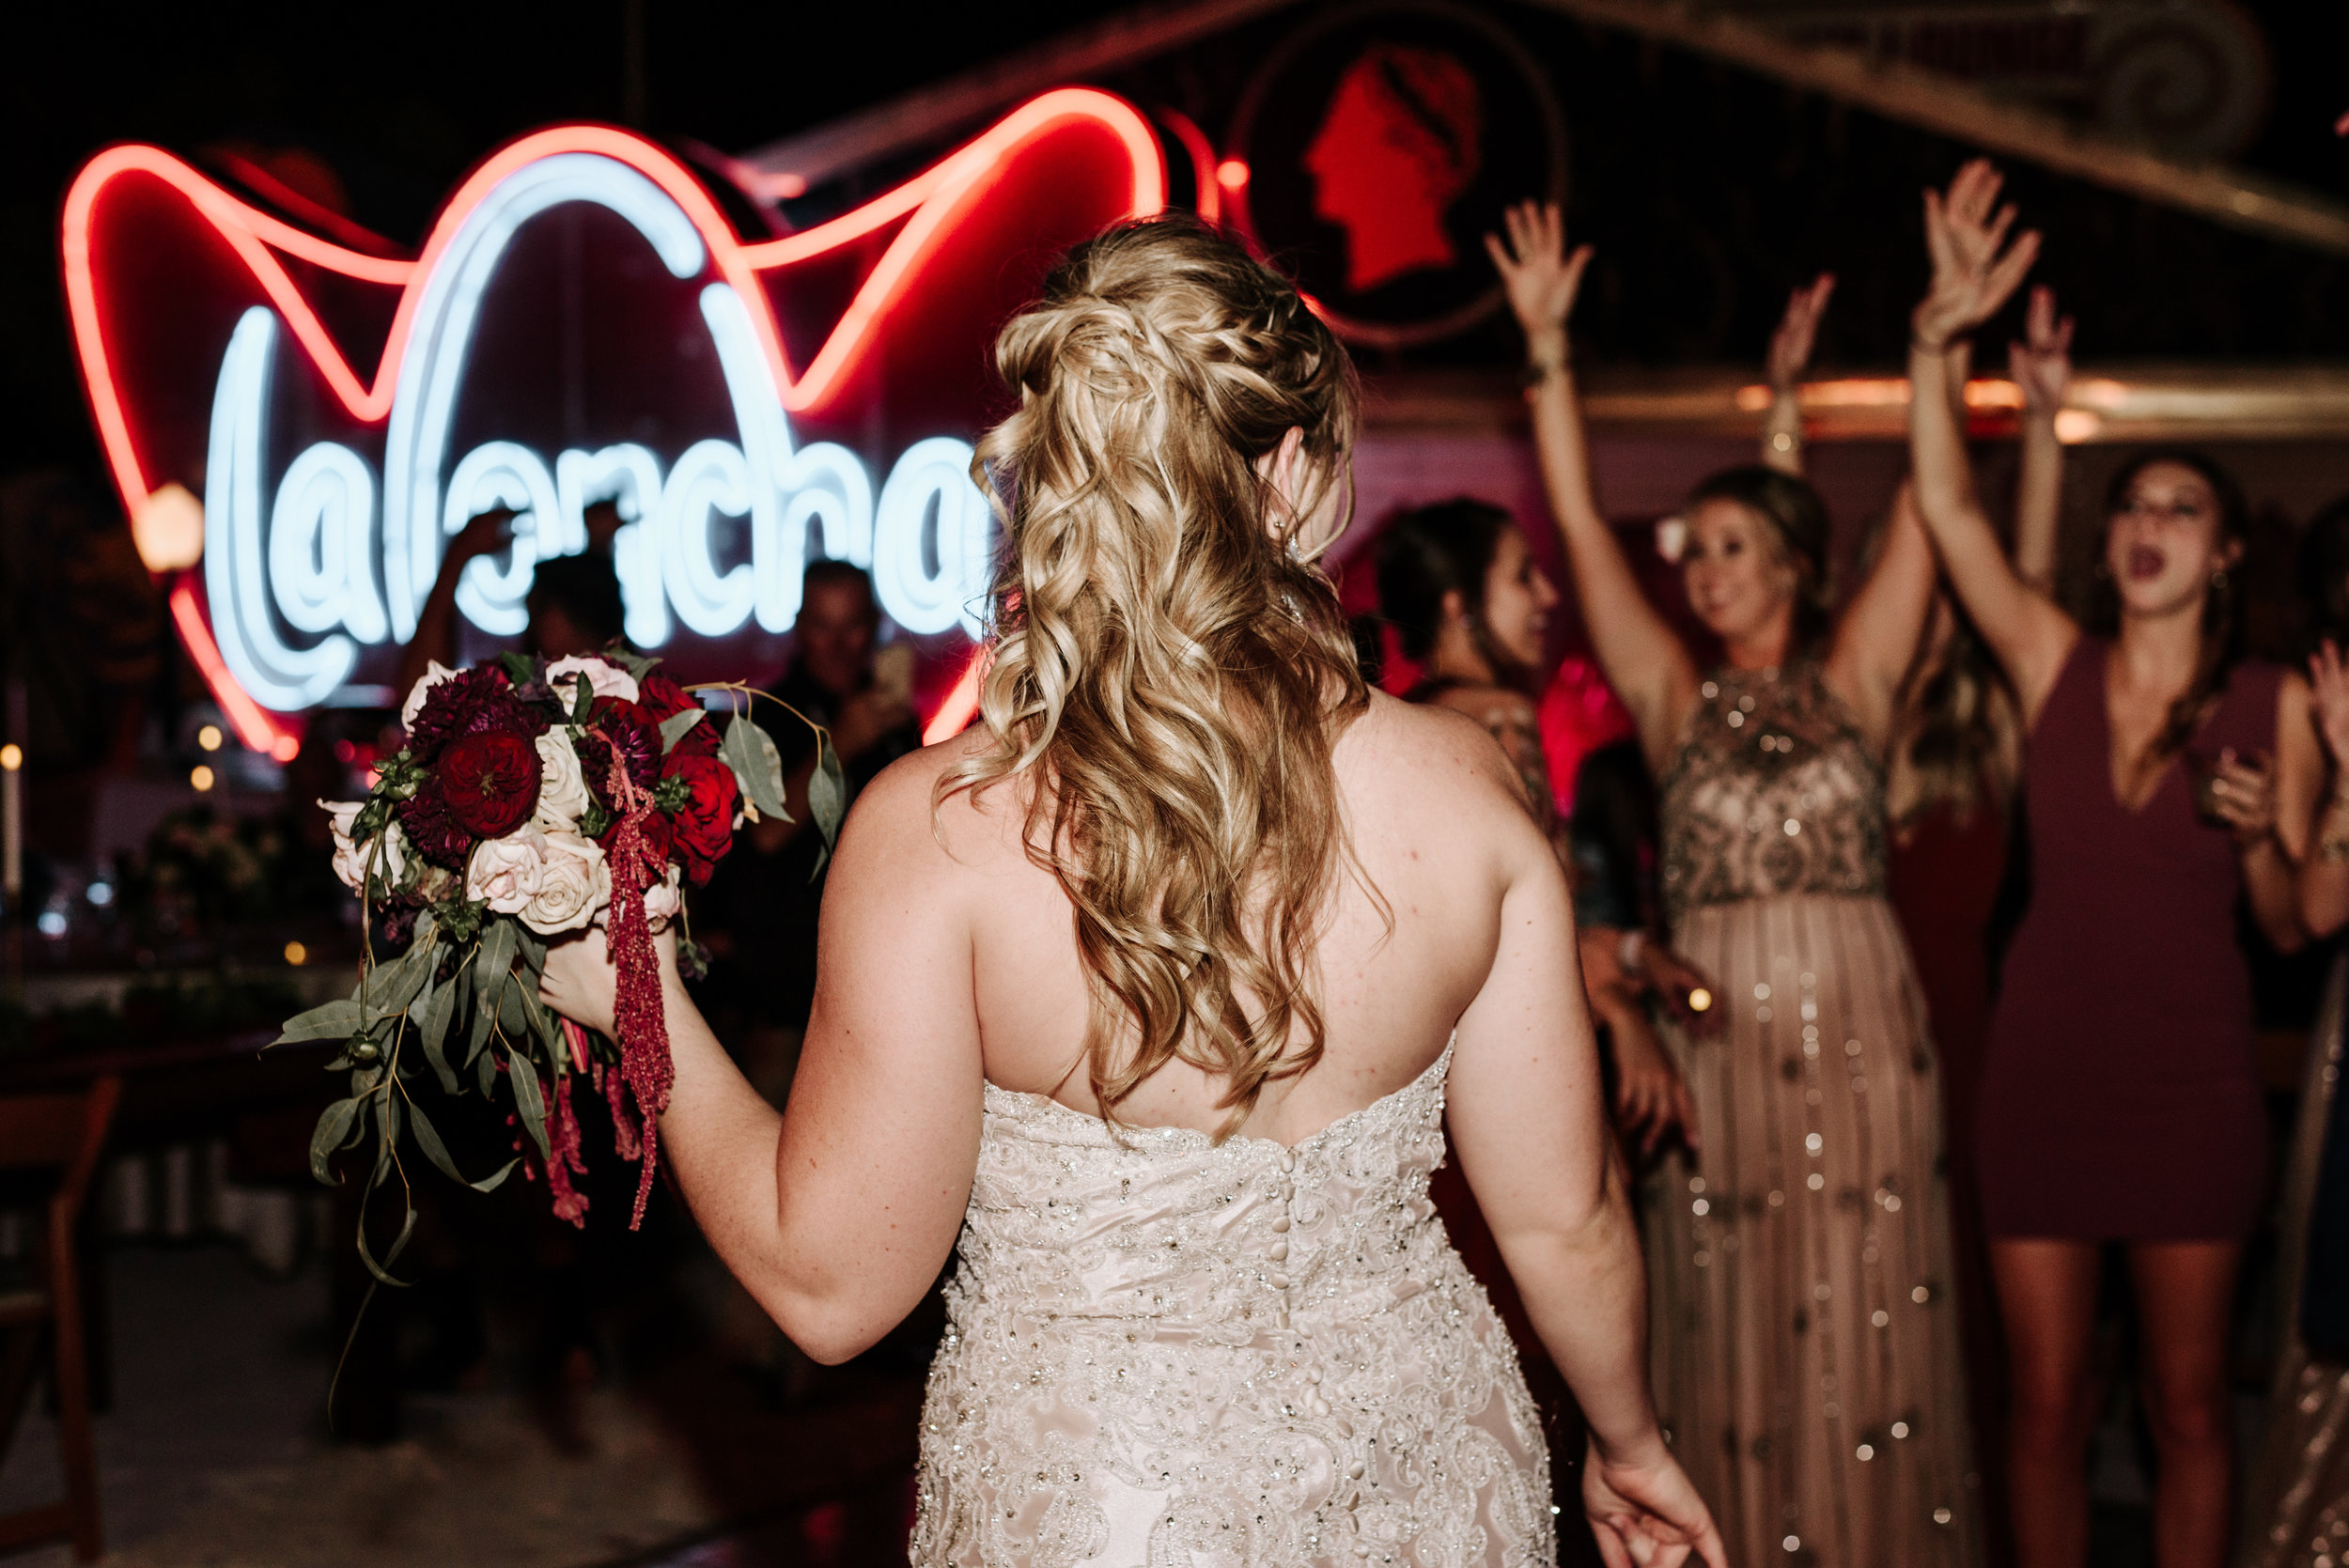 Neon-Museum-Wedding-Las-Vegas-Nevada-Golden-Nugget-Photography-by-V-Ally-and-Dan-7302.jpg